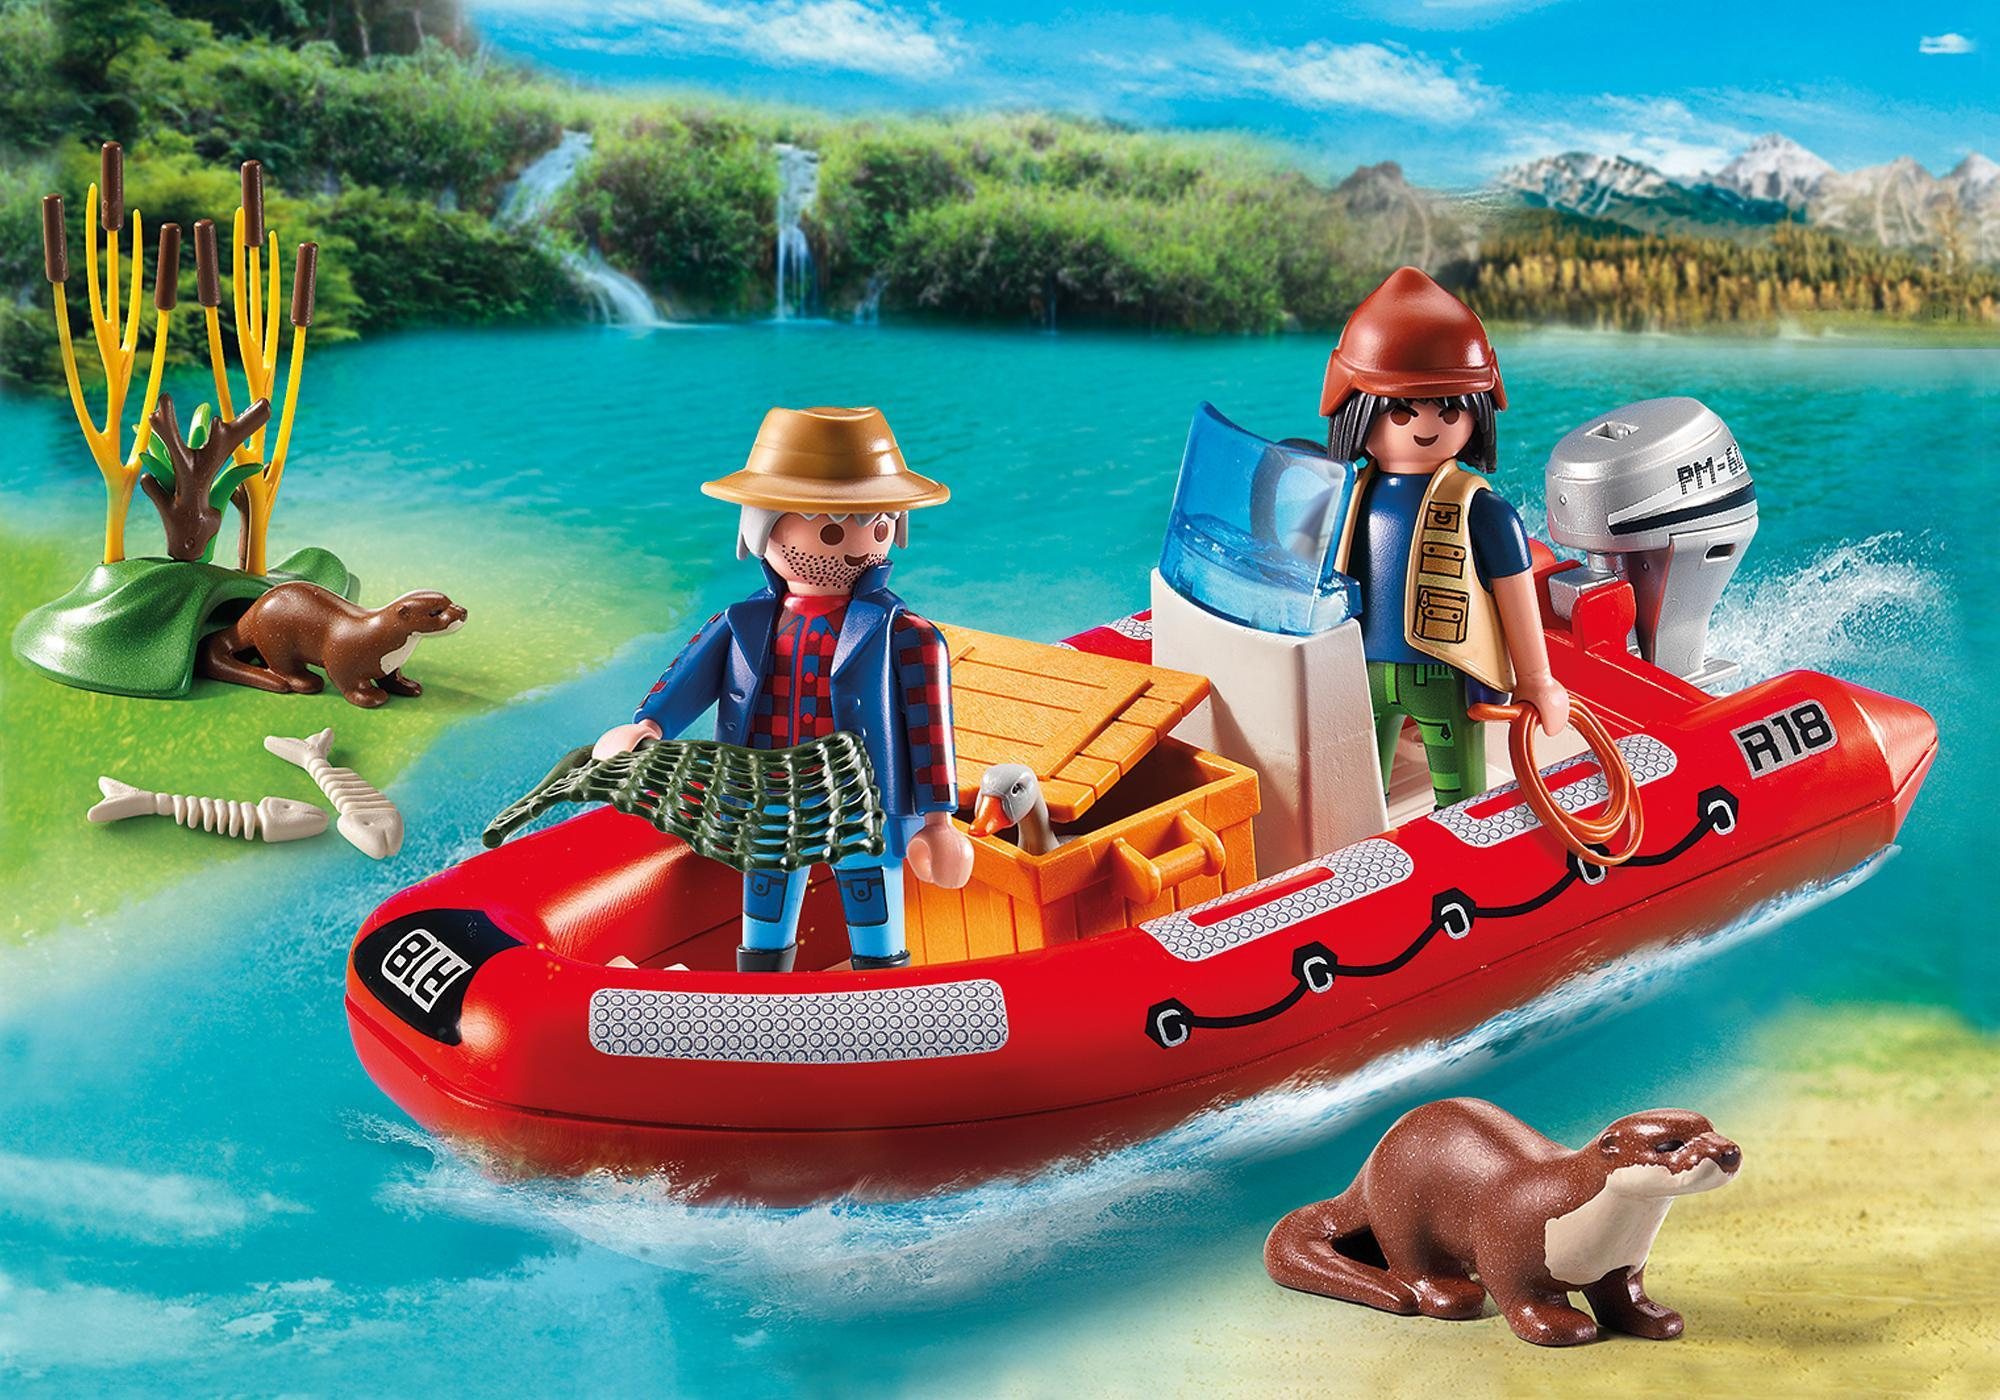 http://media.playmobil.com/i/playmobil/5559_product_detail/Rubberboot met stropers